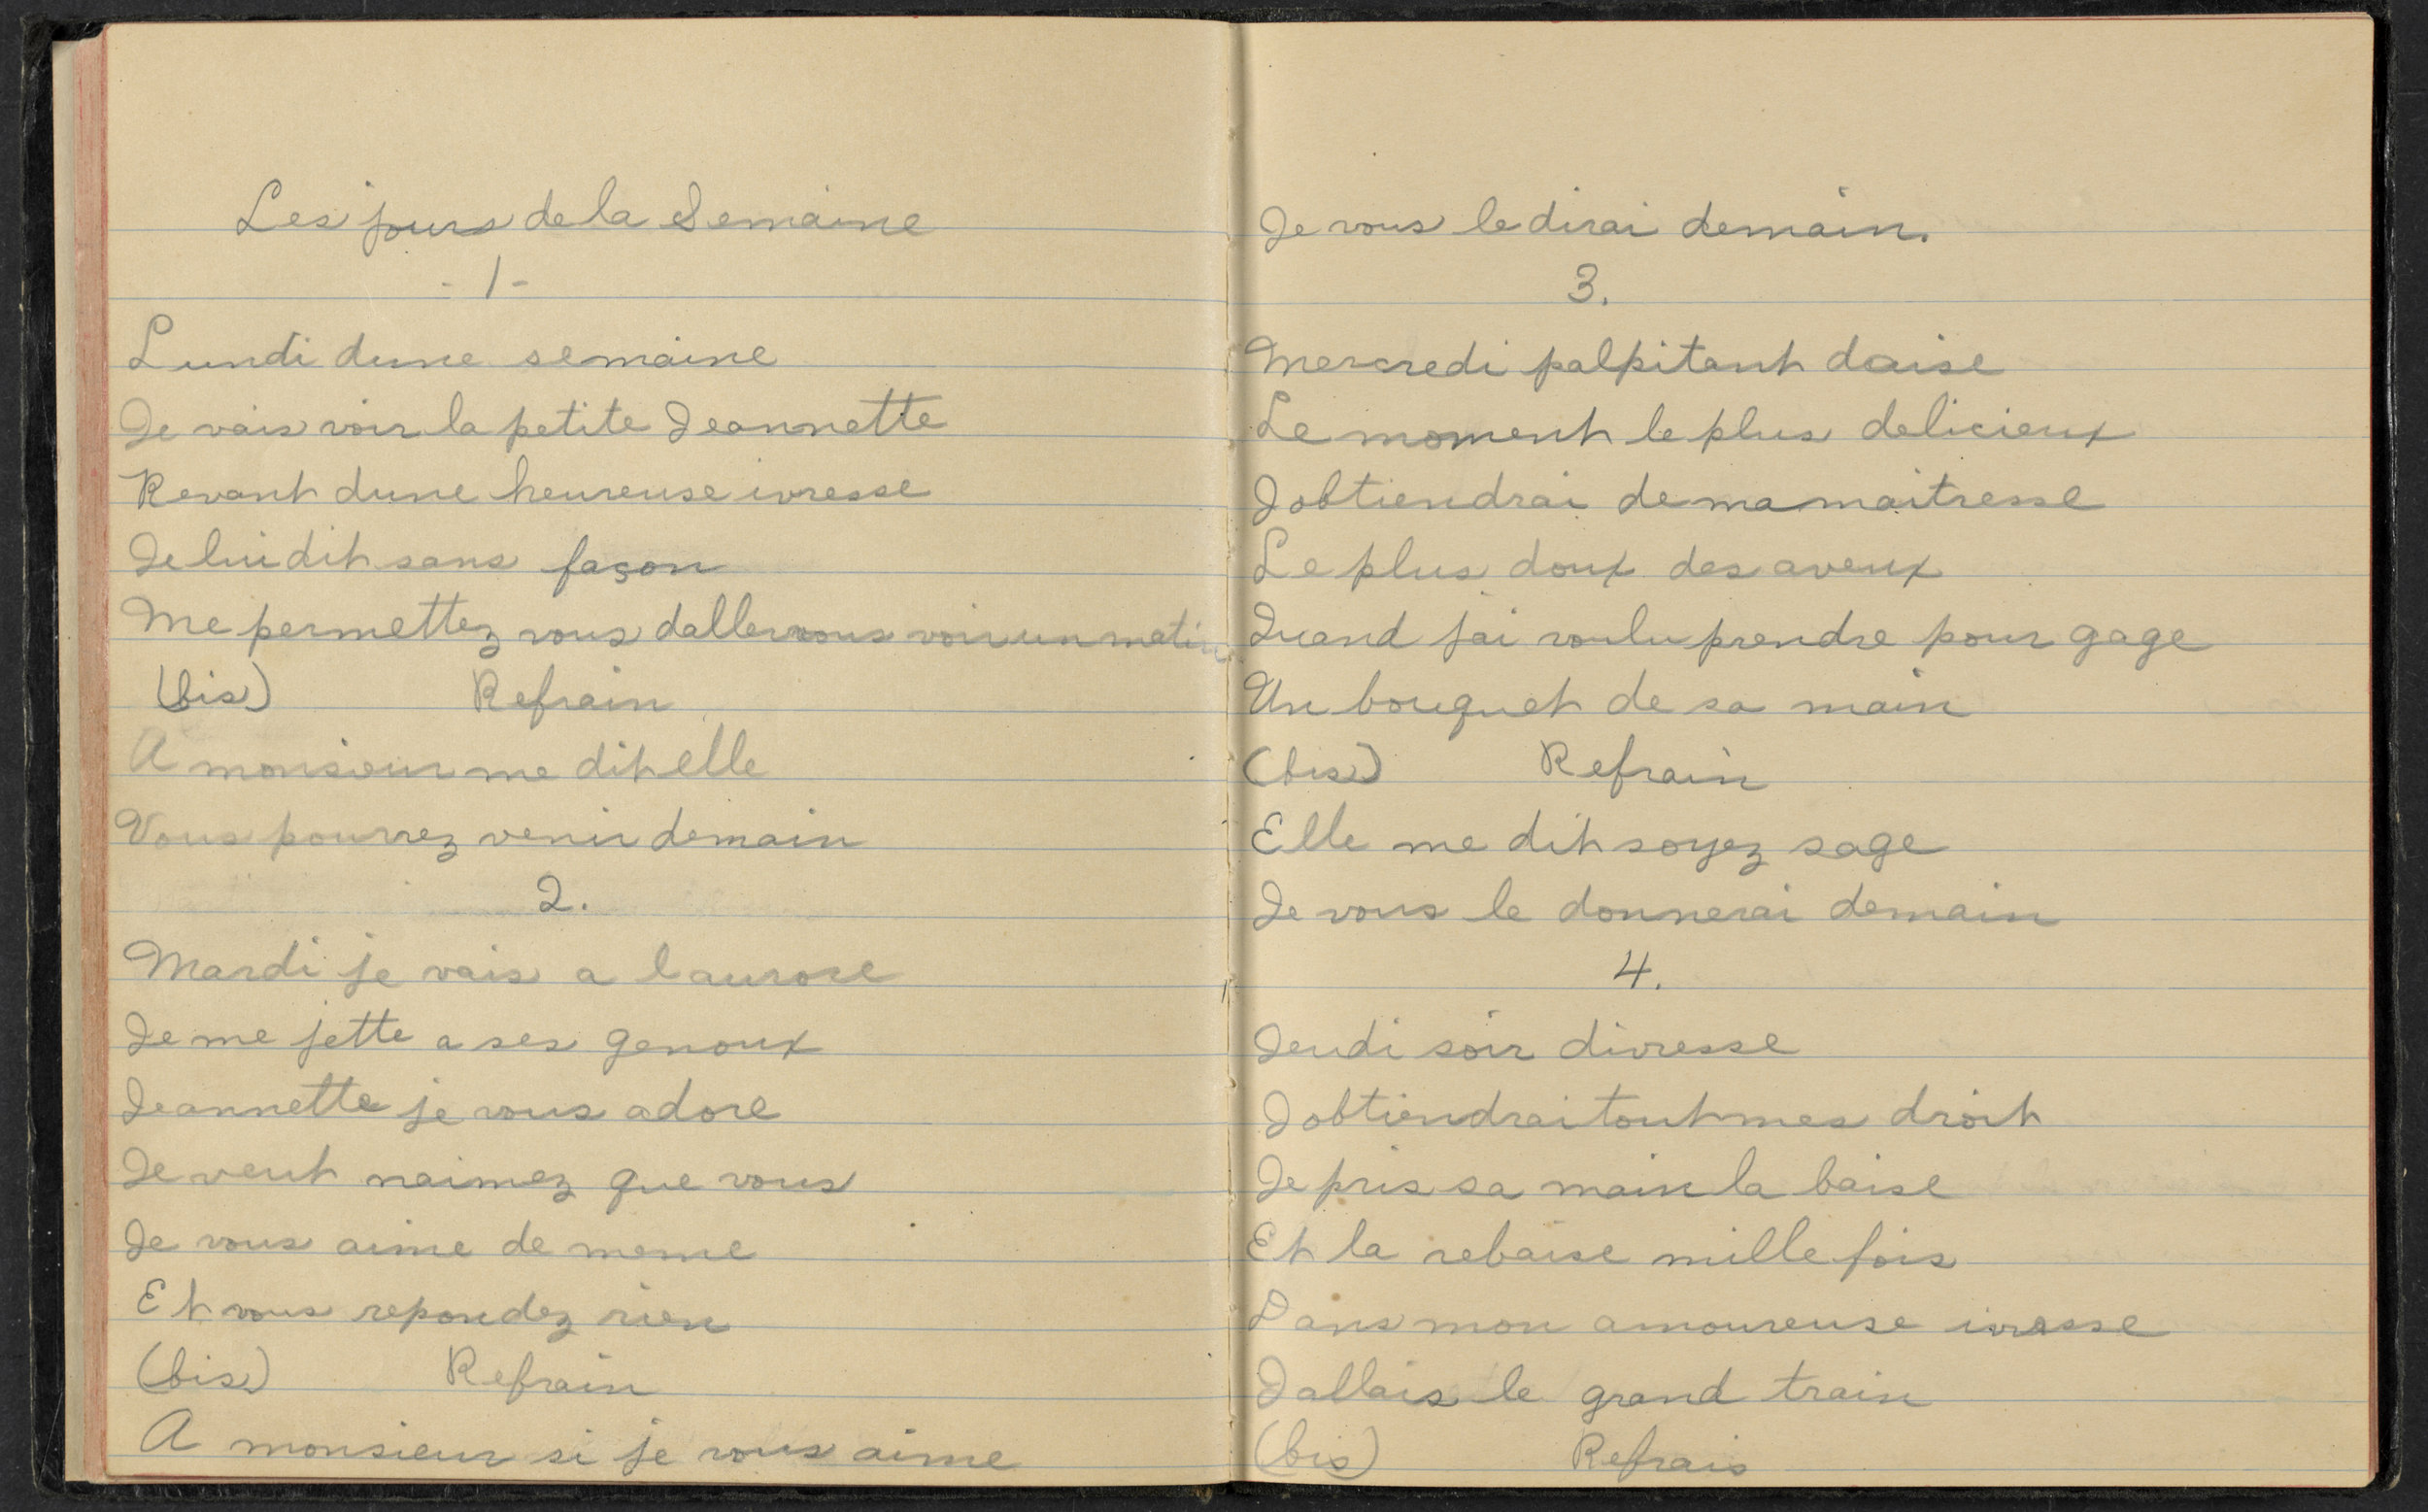 Song book manuscript from the Beaudoin Family Collection, Vermont Folklife Center Archive.